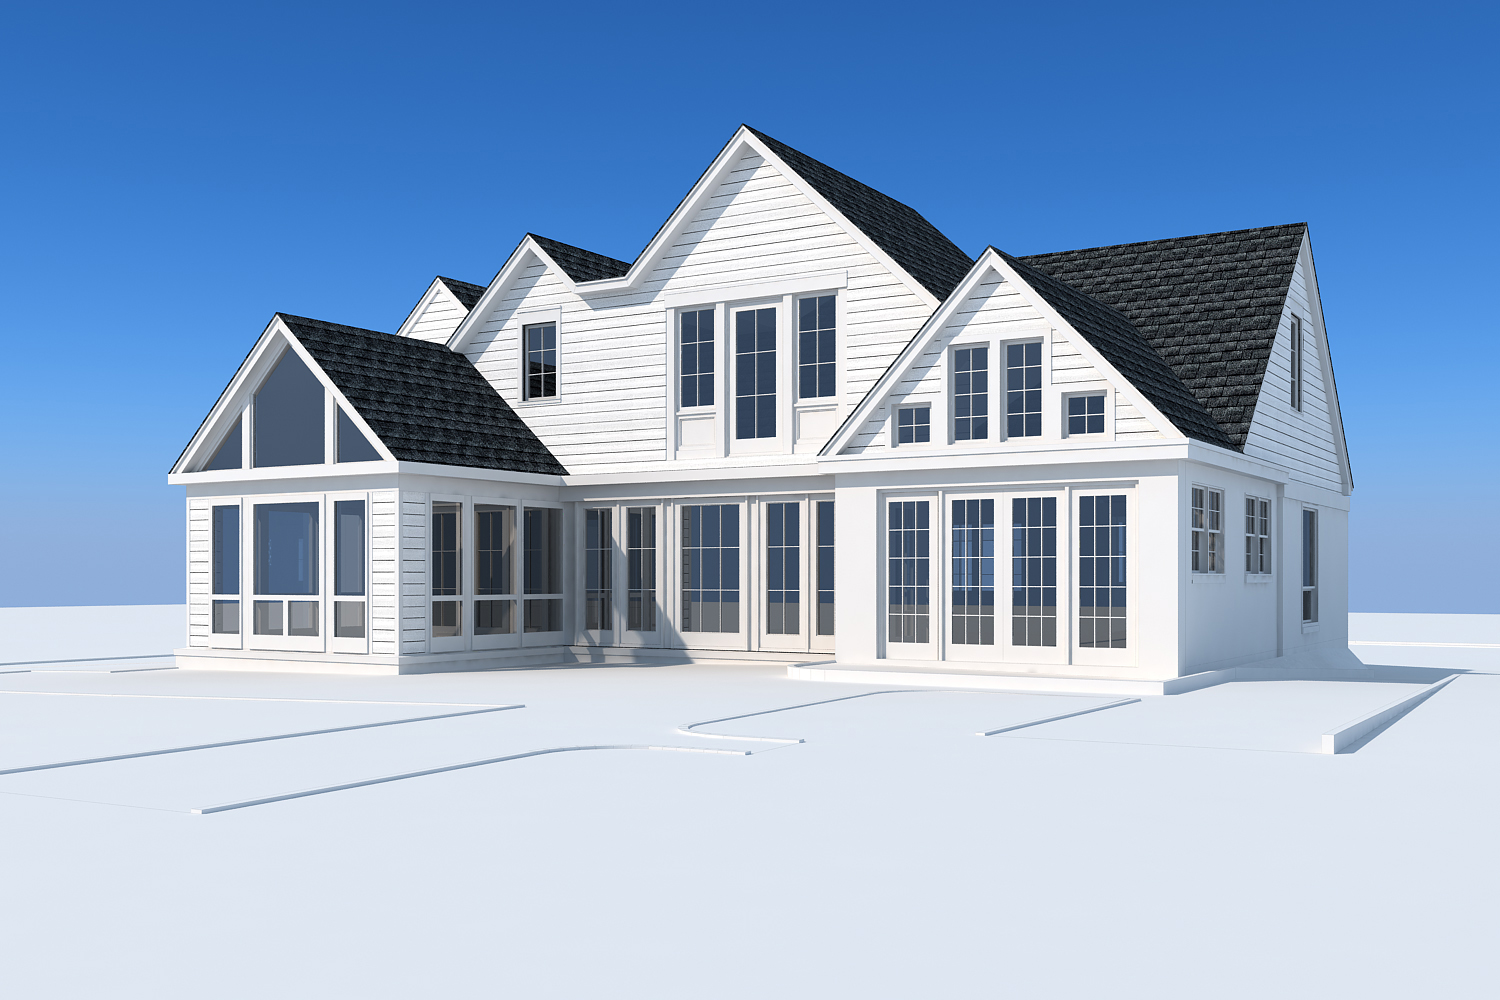 Home Addition - Conceptual rendering